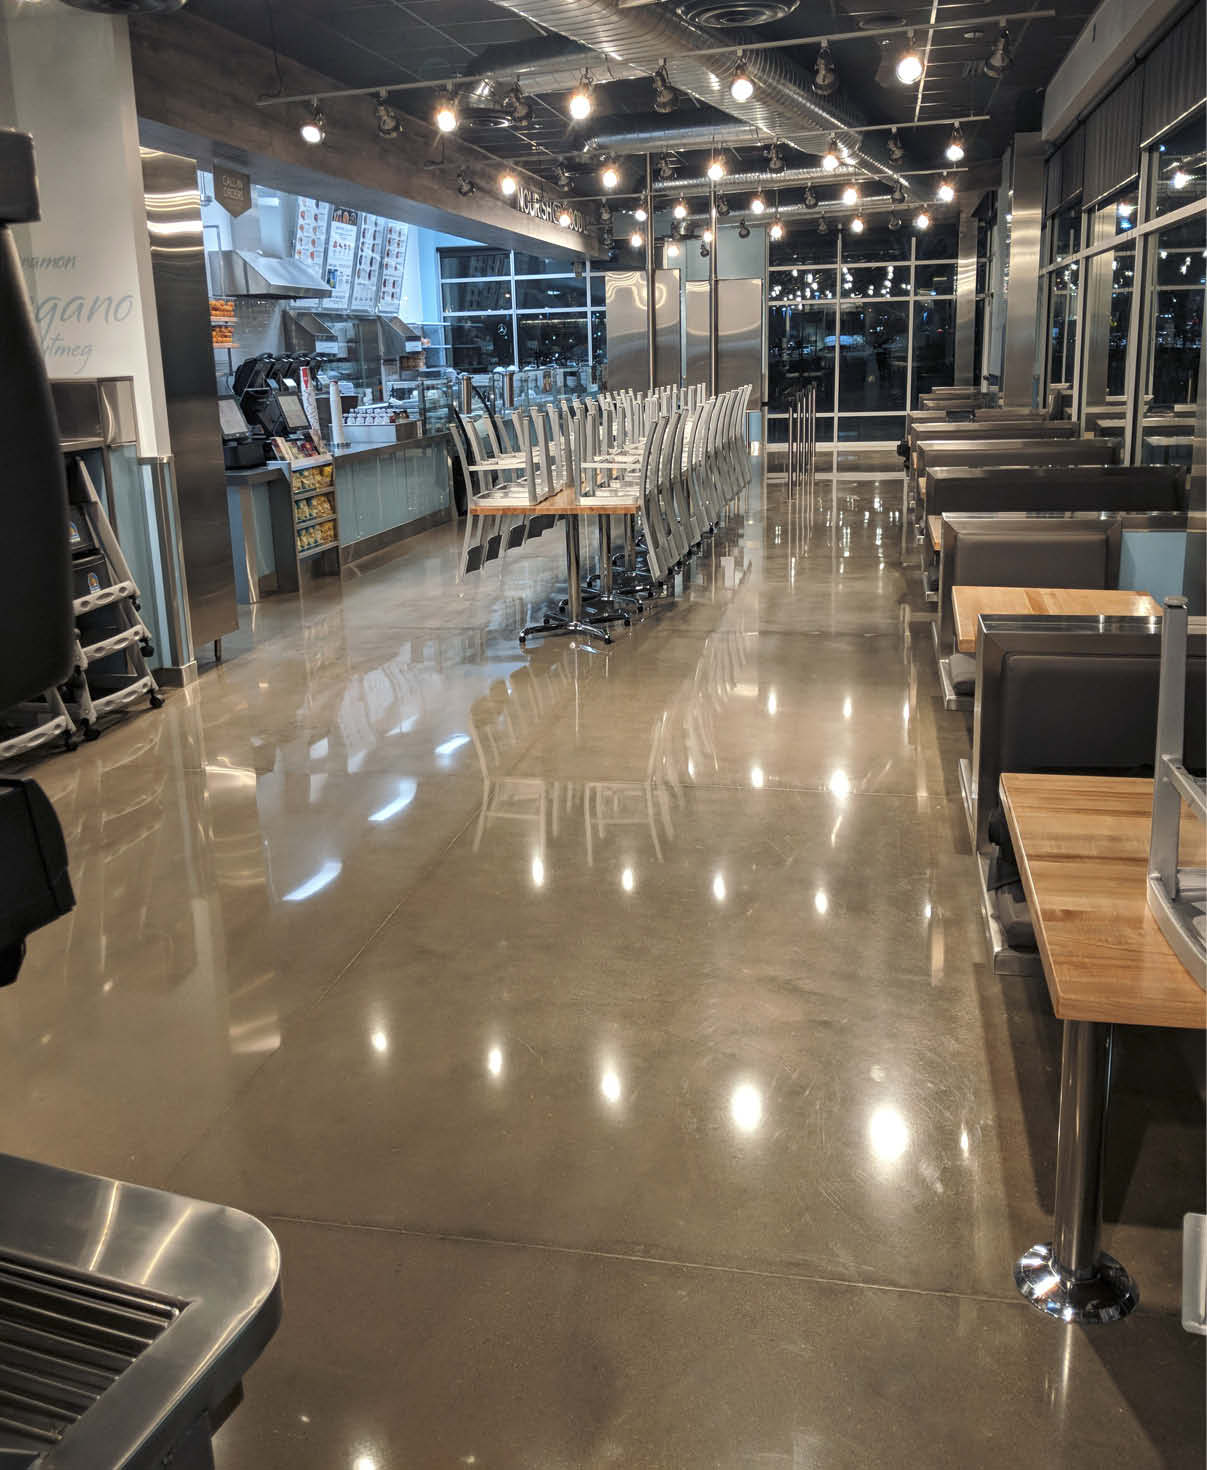 Café Zupas, a national restaurant company, are among the many eateries across the country that have opted for polished concrete in their dining rooms. To keep the floors in good shape, administrators recognize the importance of a proper maintenance program.